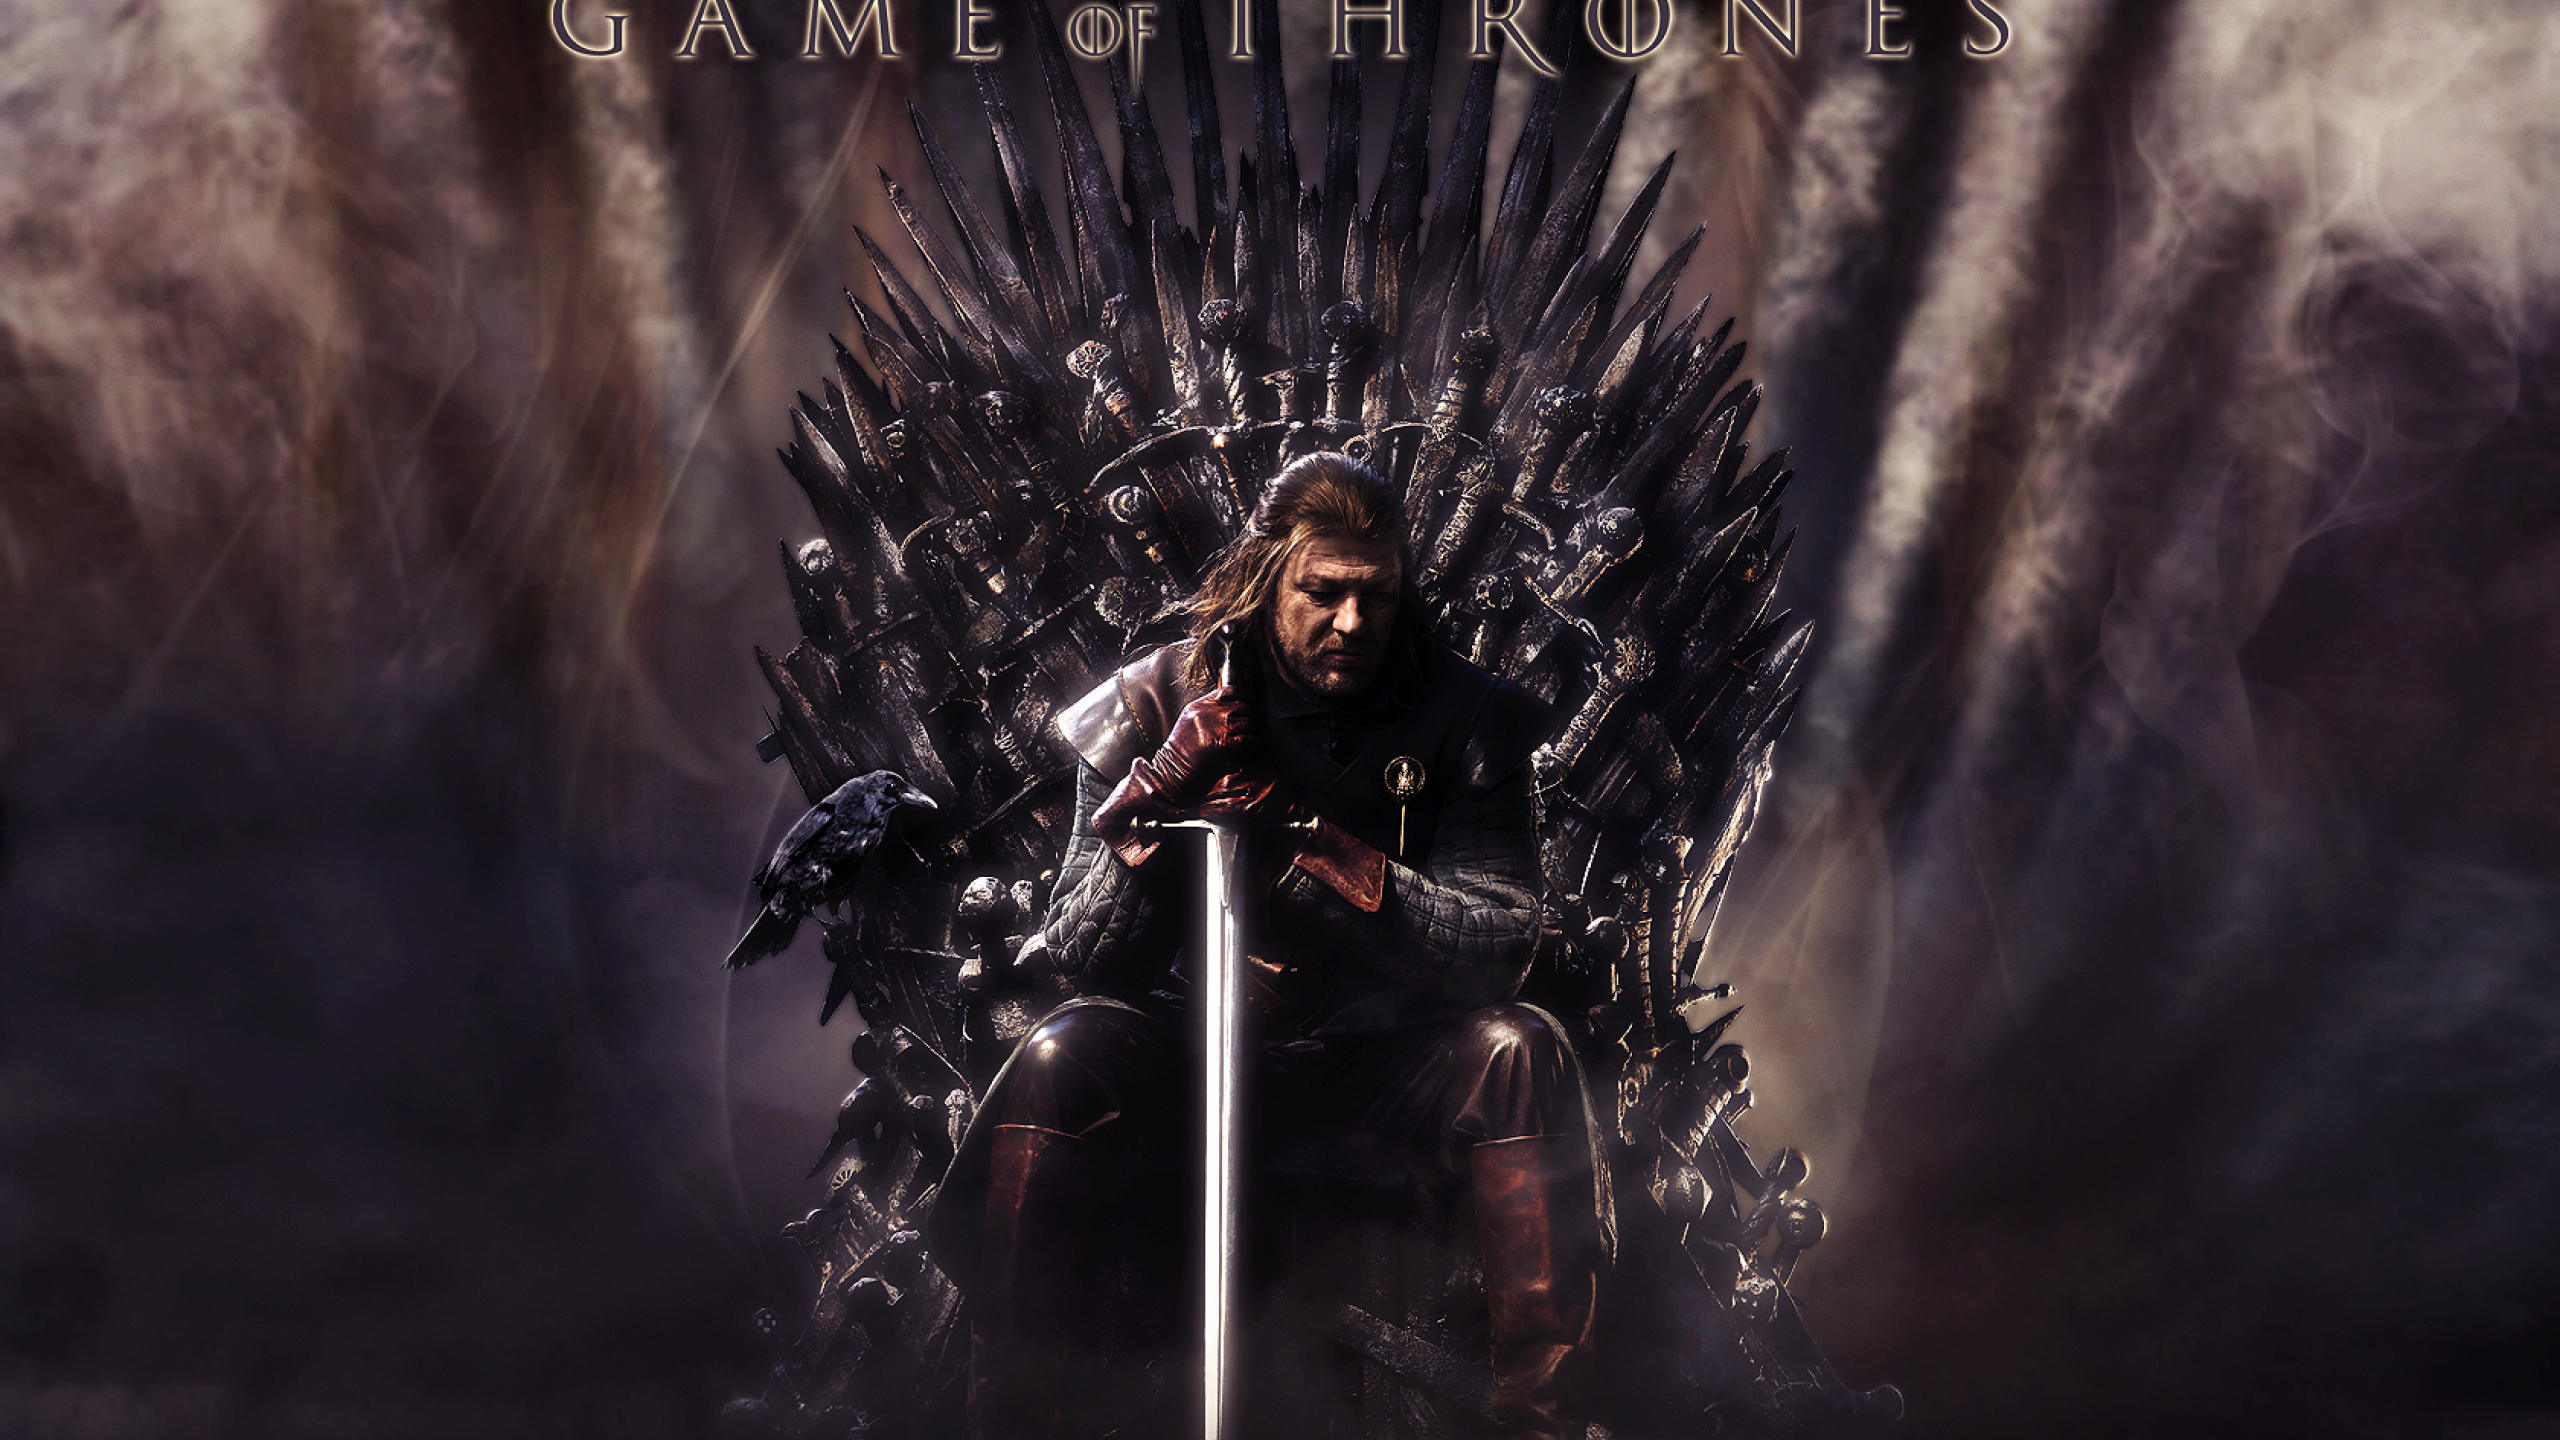 2560x1440 Game Of Thrones Hd Banner Wallpapers 1440p Resolution